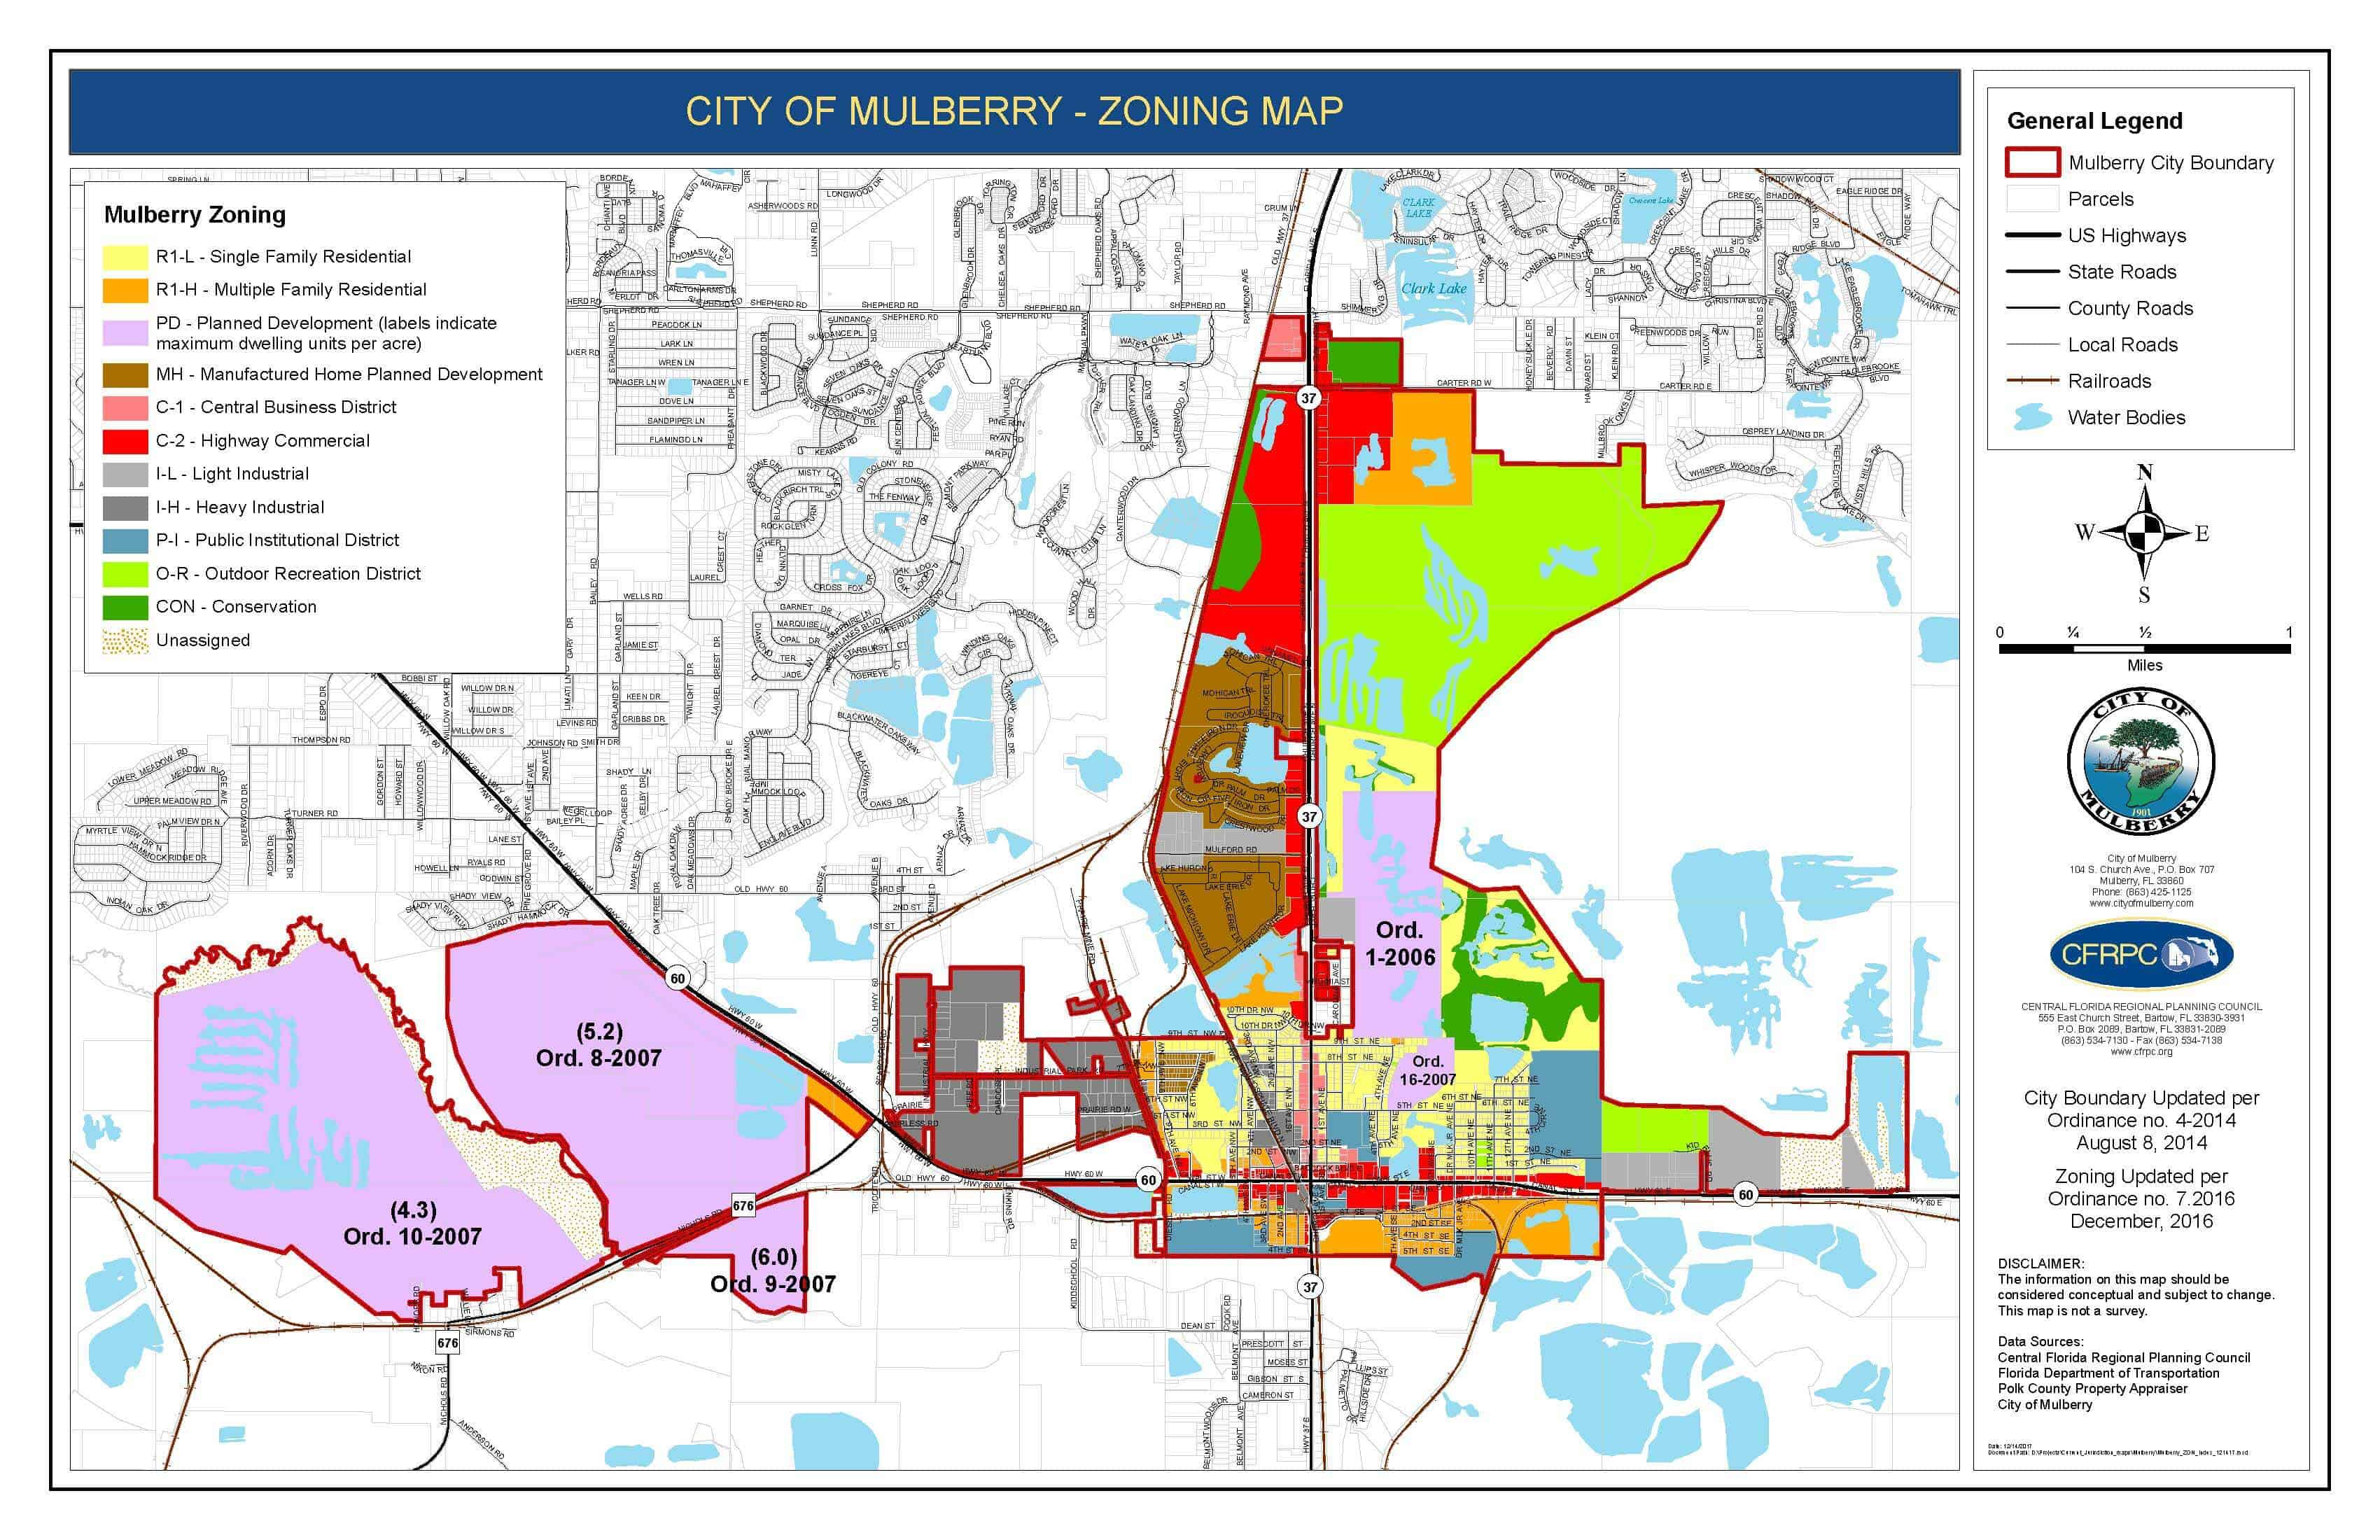 Mulberry Zoning Map